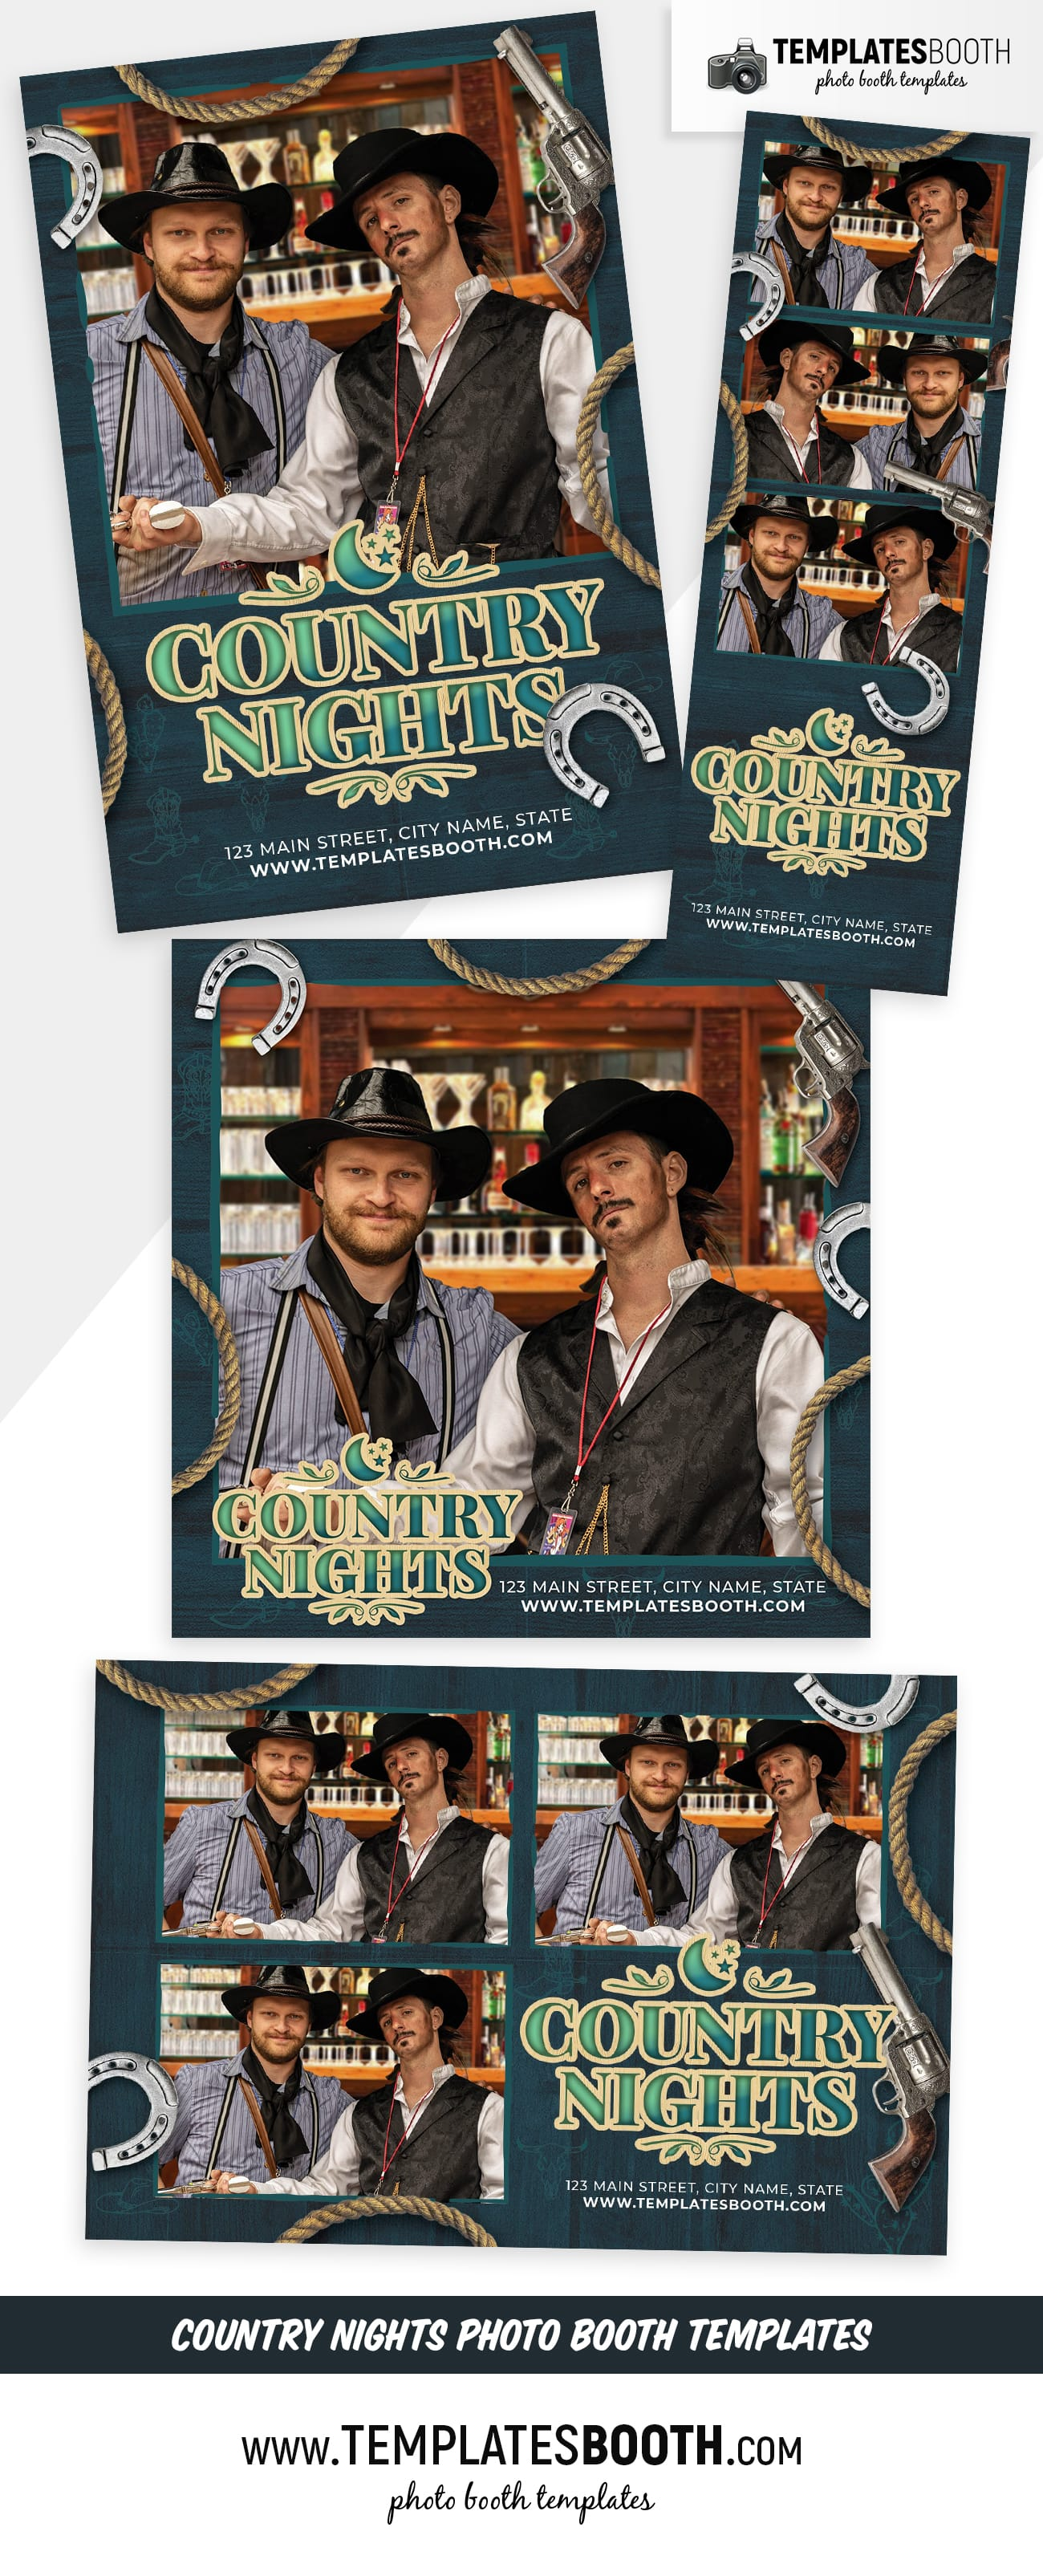 Country Nights Photo Booth Template (Full Preview